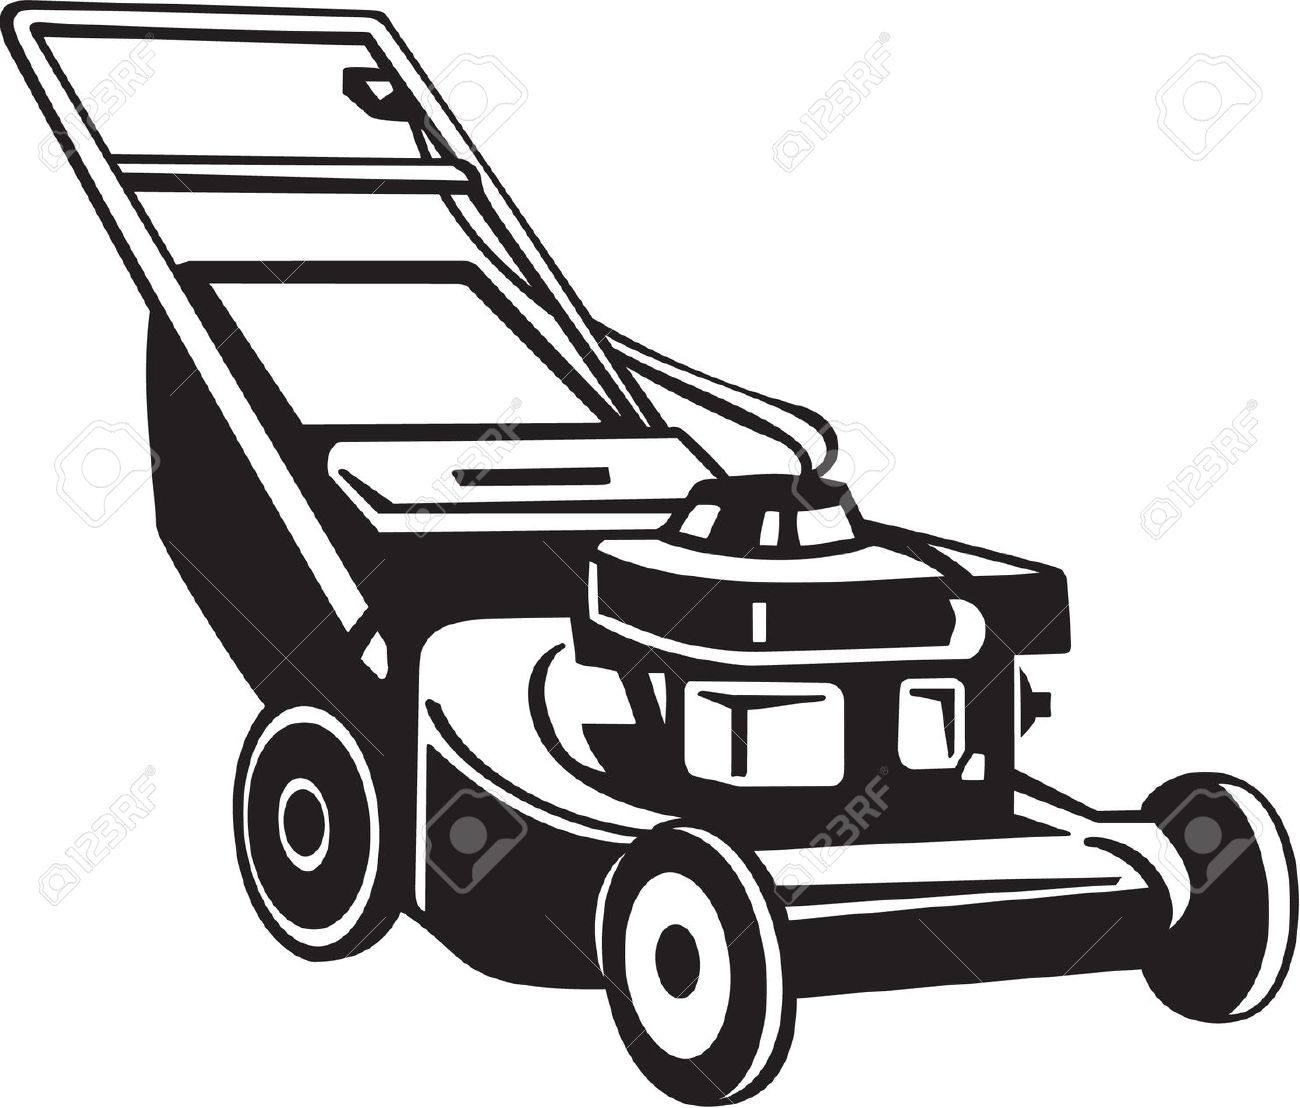 Commercial riding lawn mower clipart black and white jpg transparent library Commercial Lawn Mower Clipart | Free download best Commercial Lawn ... jpg transparent library